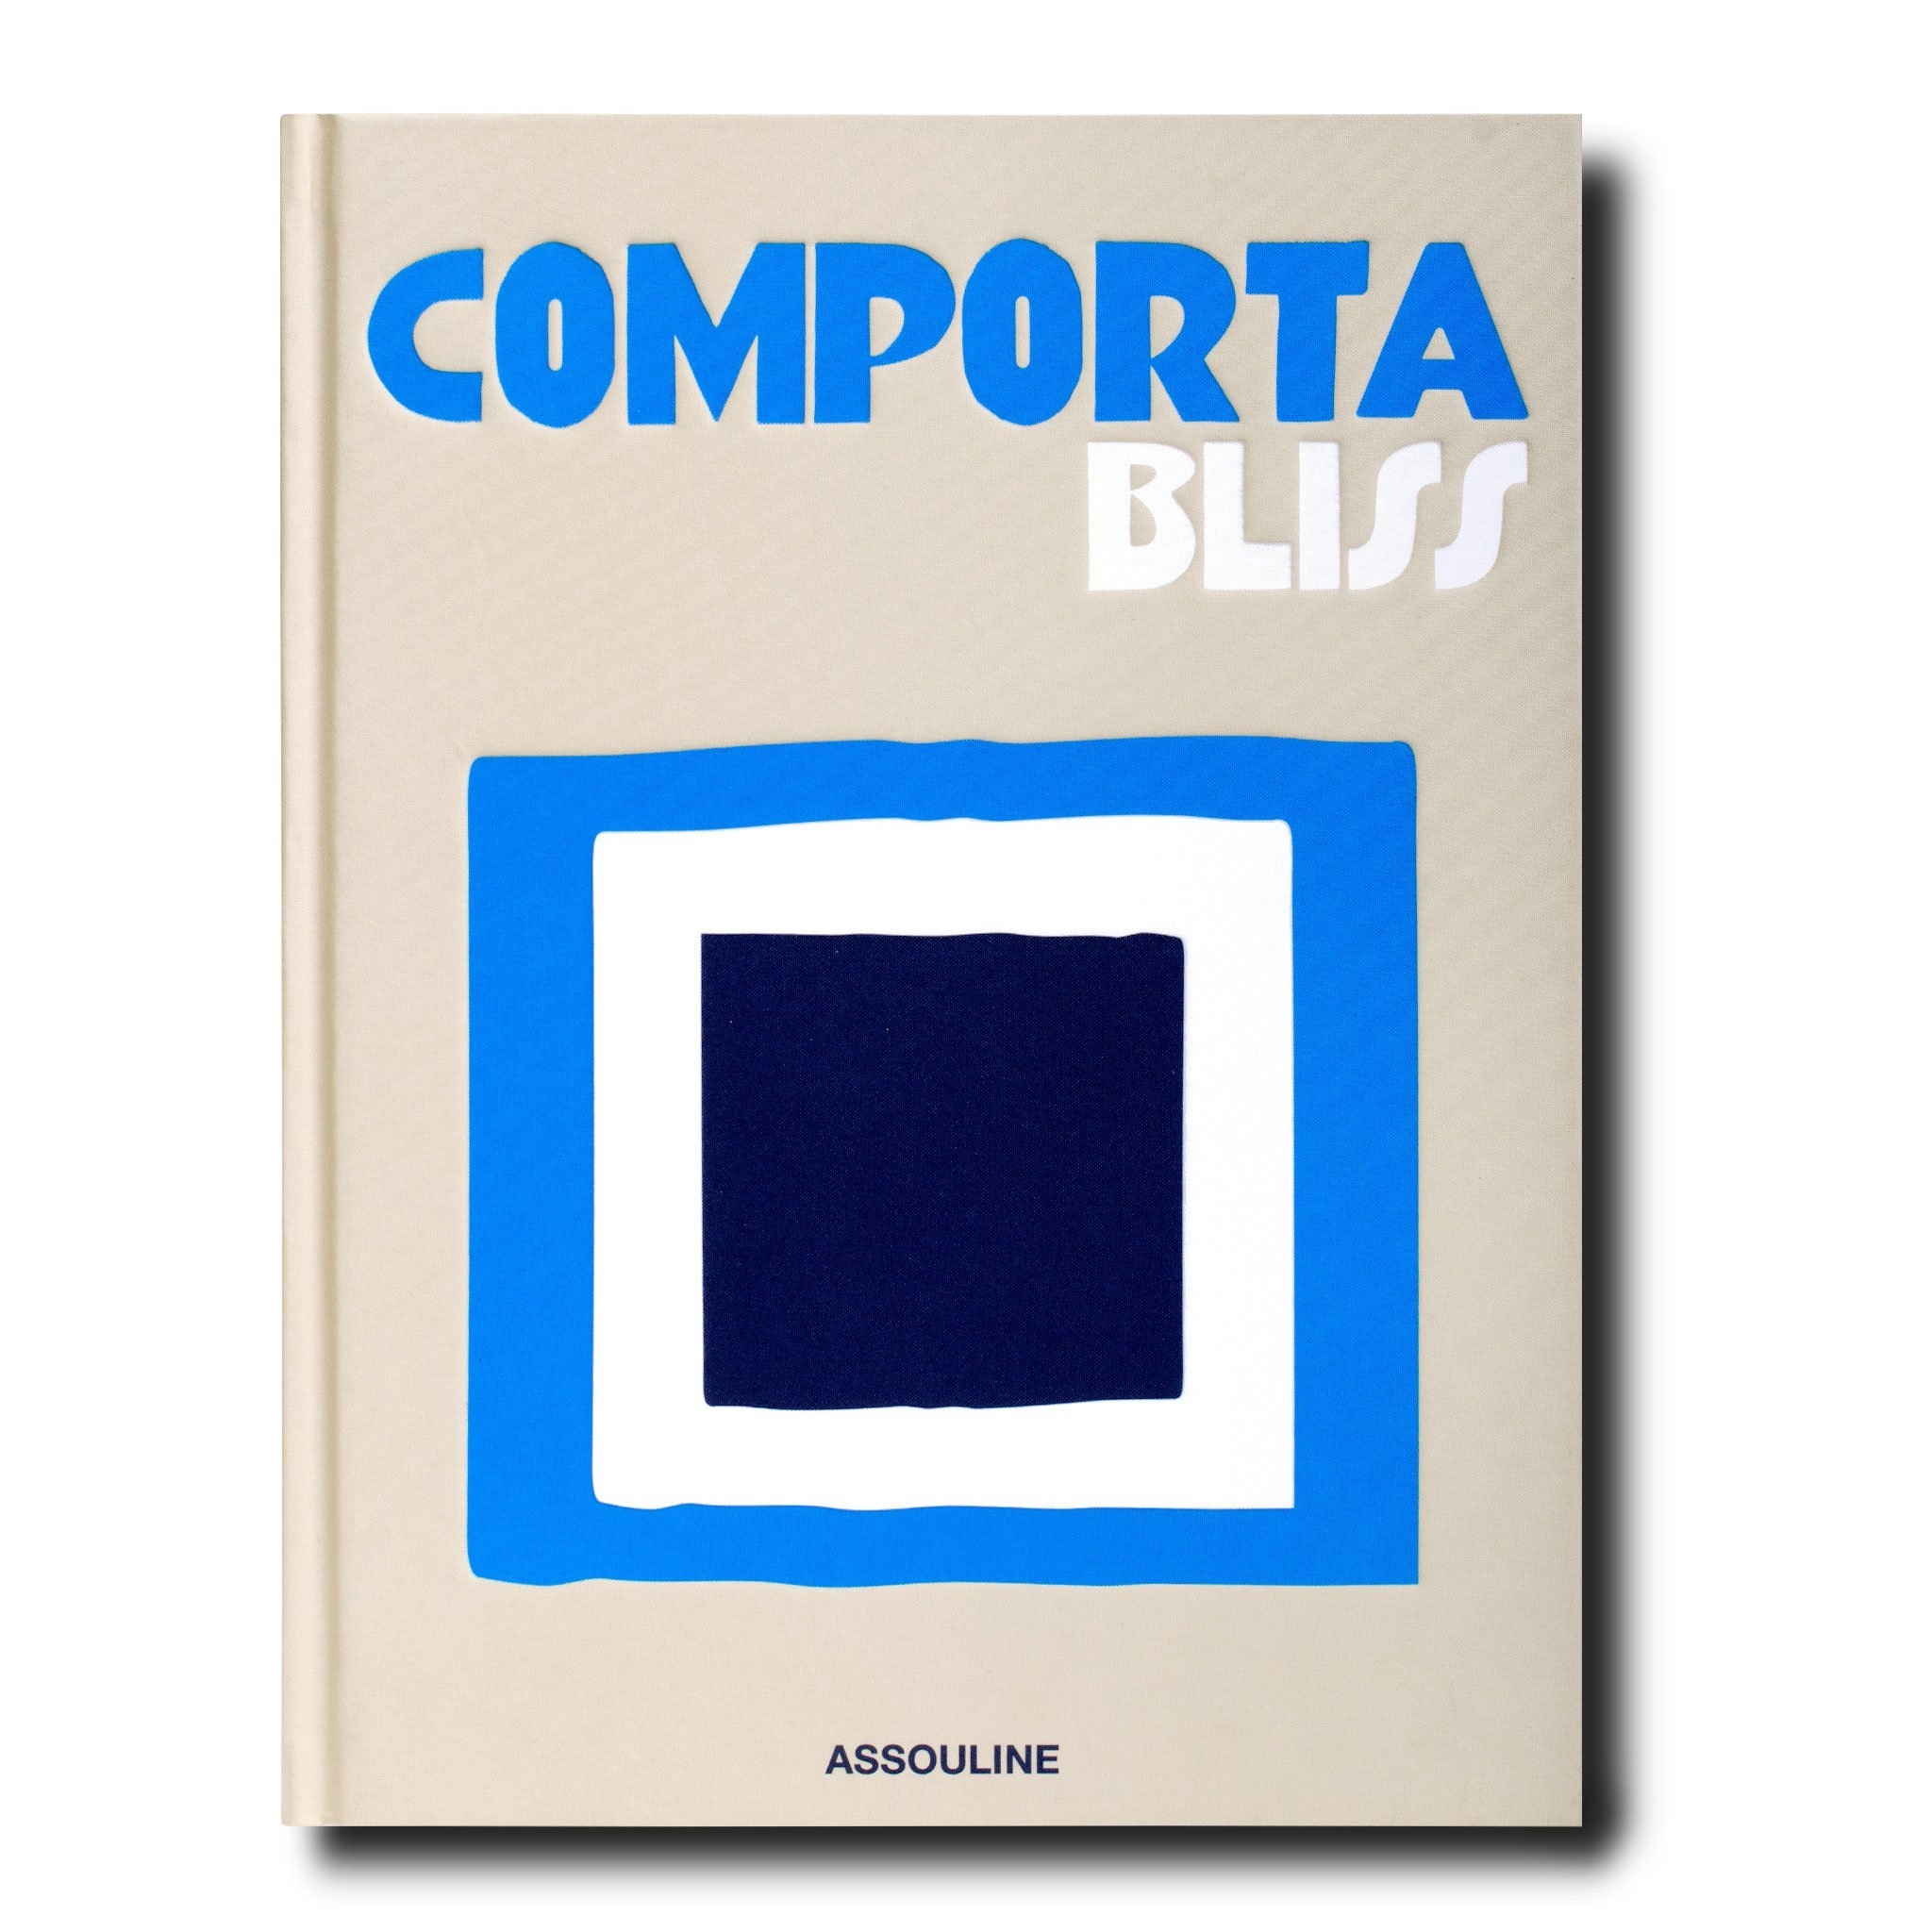 Capa Comporta Bliss © Assouline